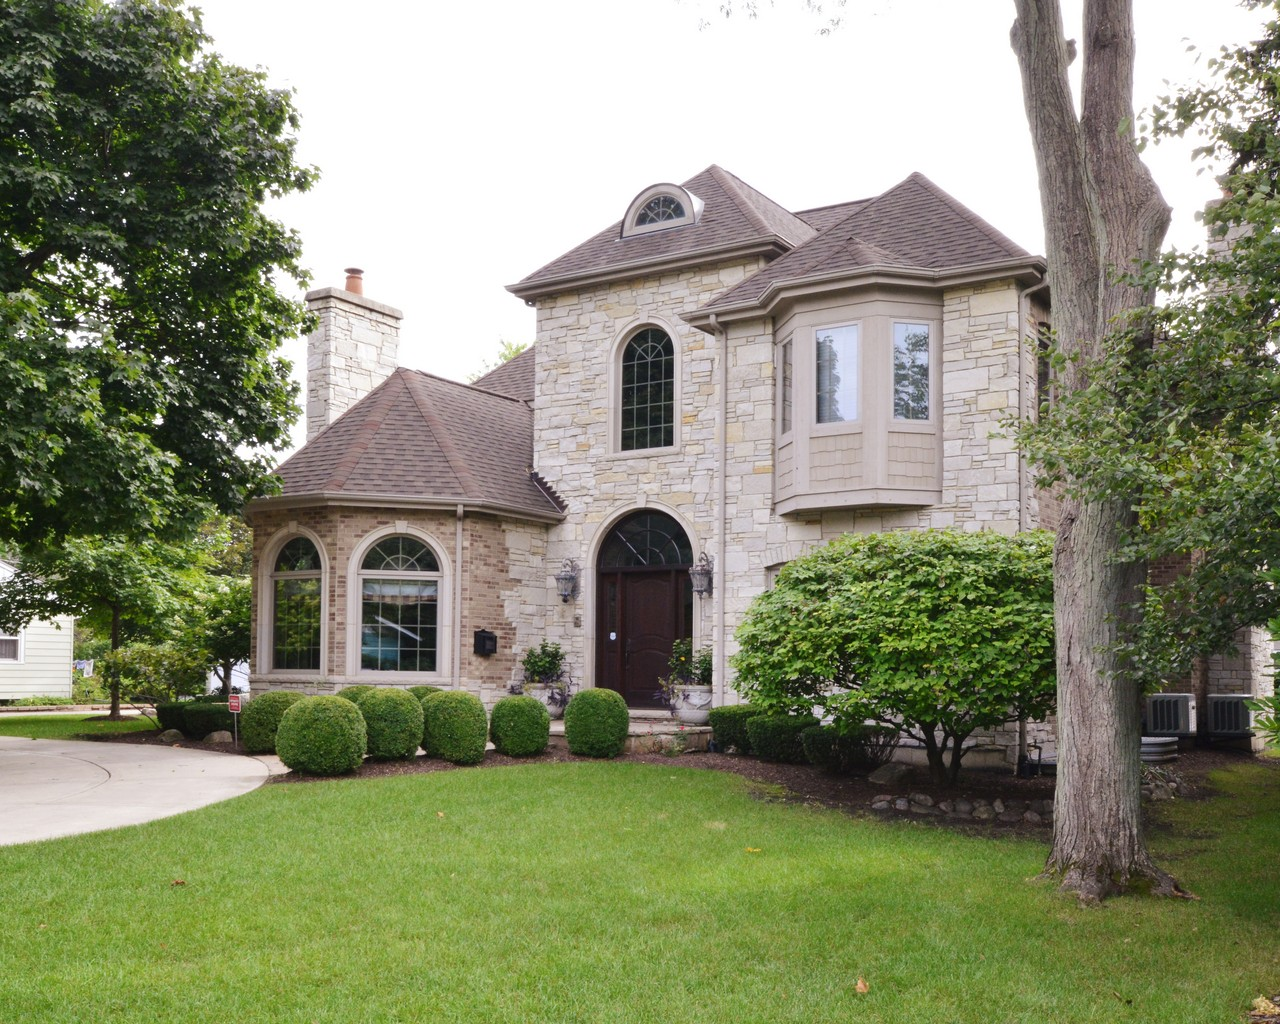 Single Family Home for Sale at 415 Phillippa Street 415 Phillppa Street Hinsdale, Illinois 60521 United States